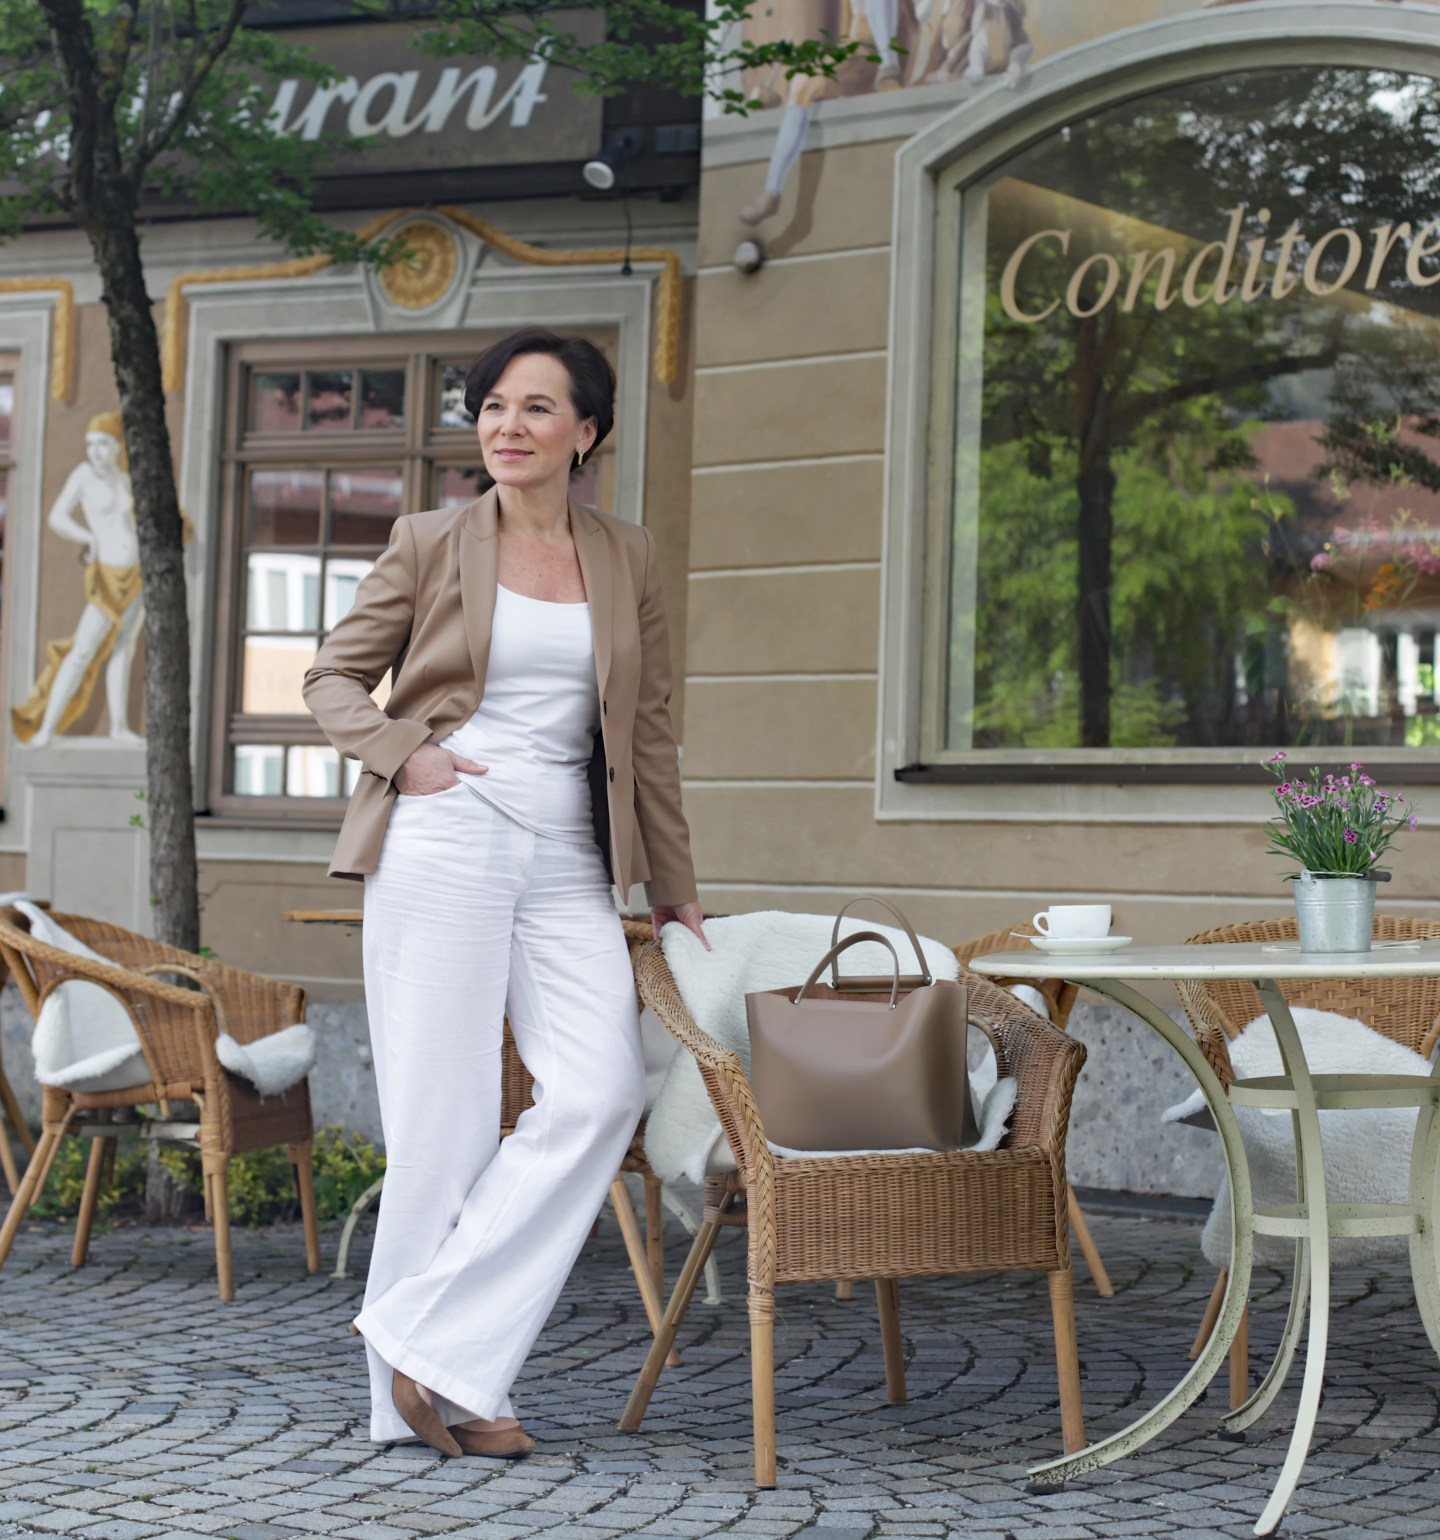 Purismus Cleanstyle Cleanchic Sommerlook Businesslook Beige 50plus LadyofStyle